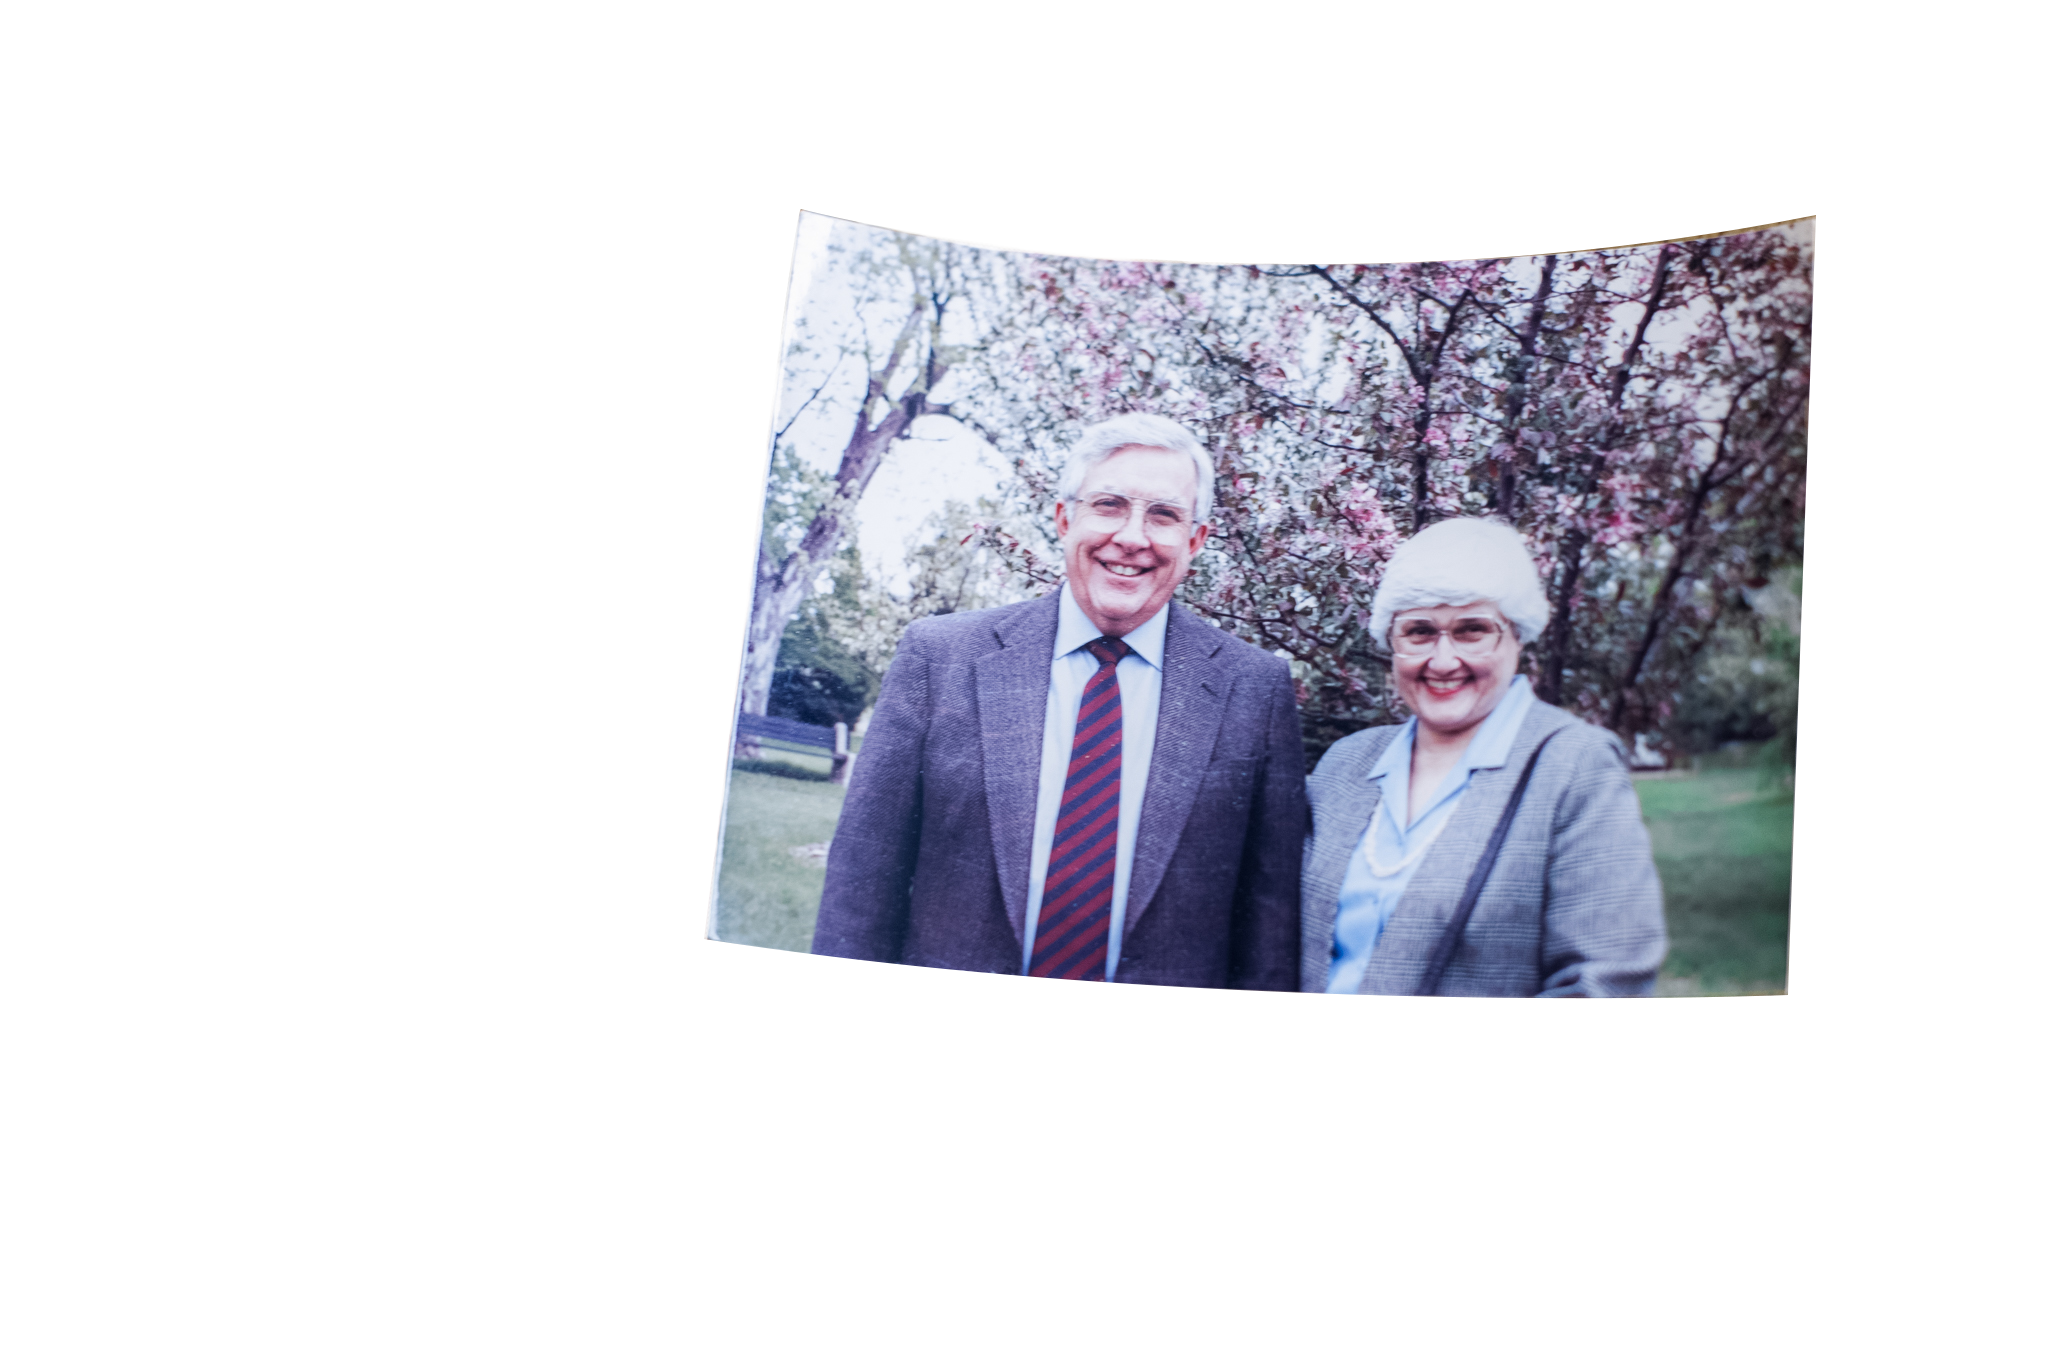 picture of an elderly couple